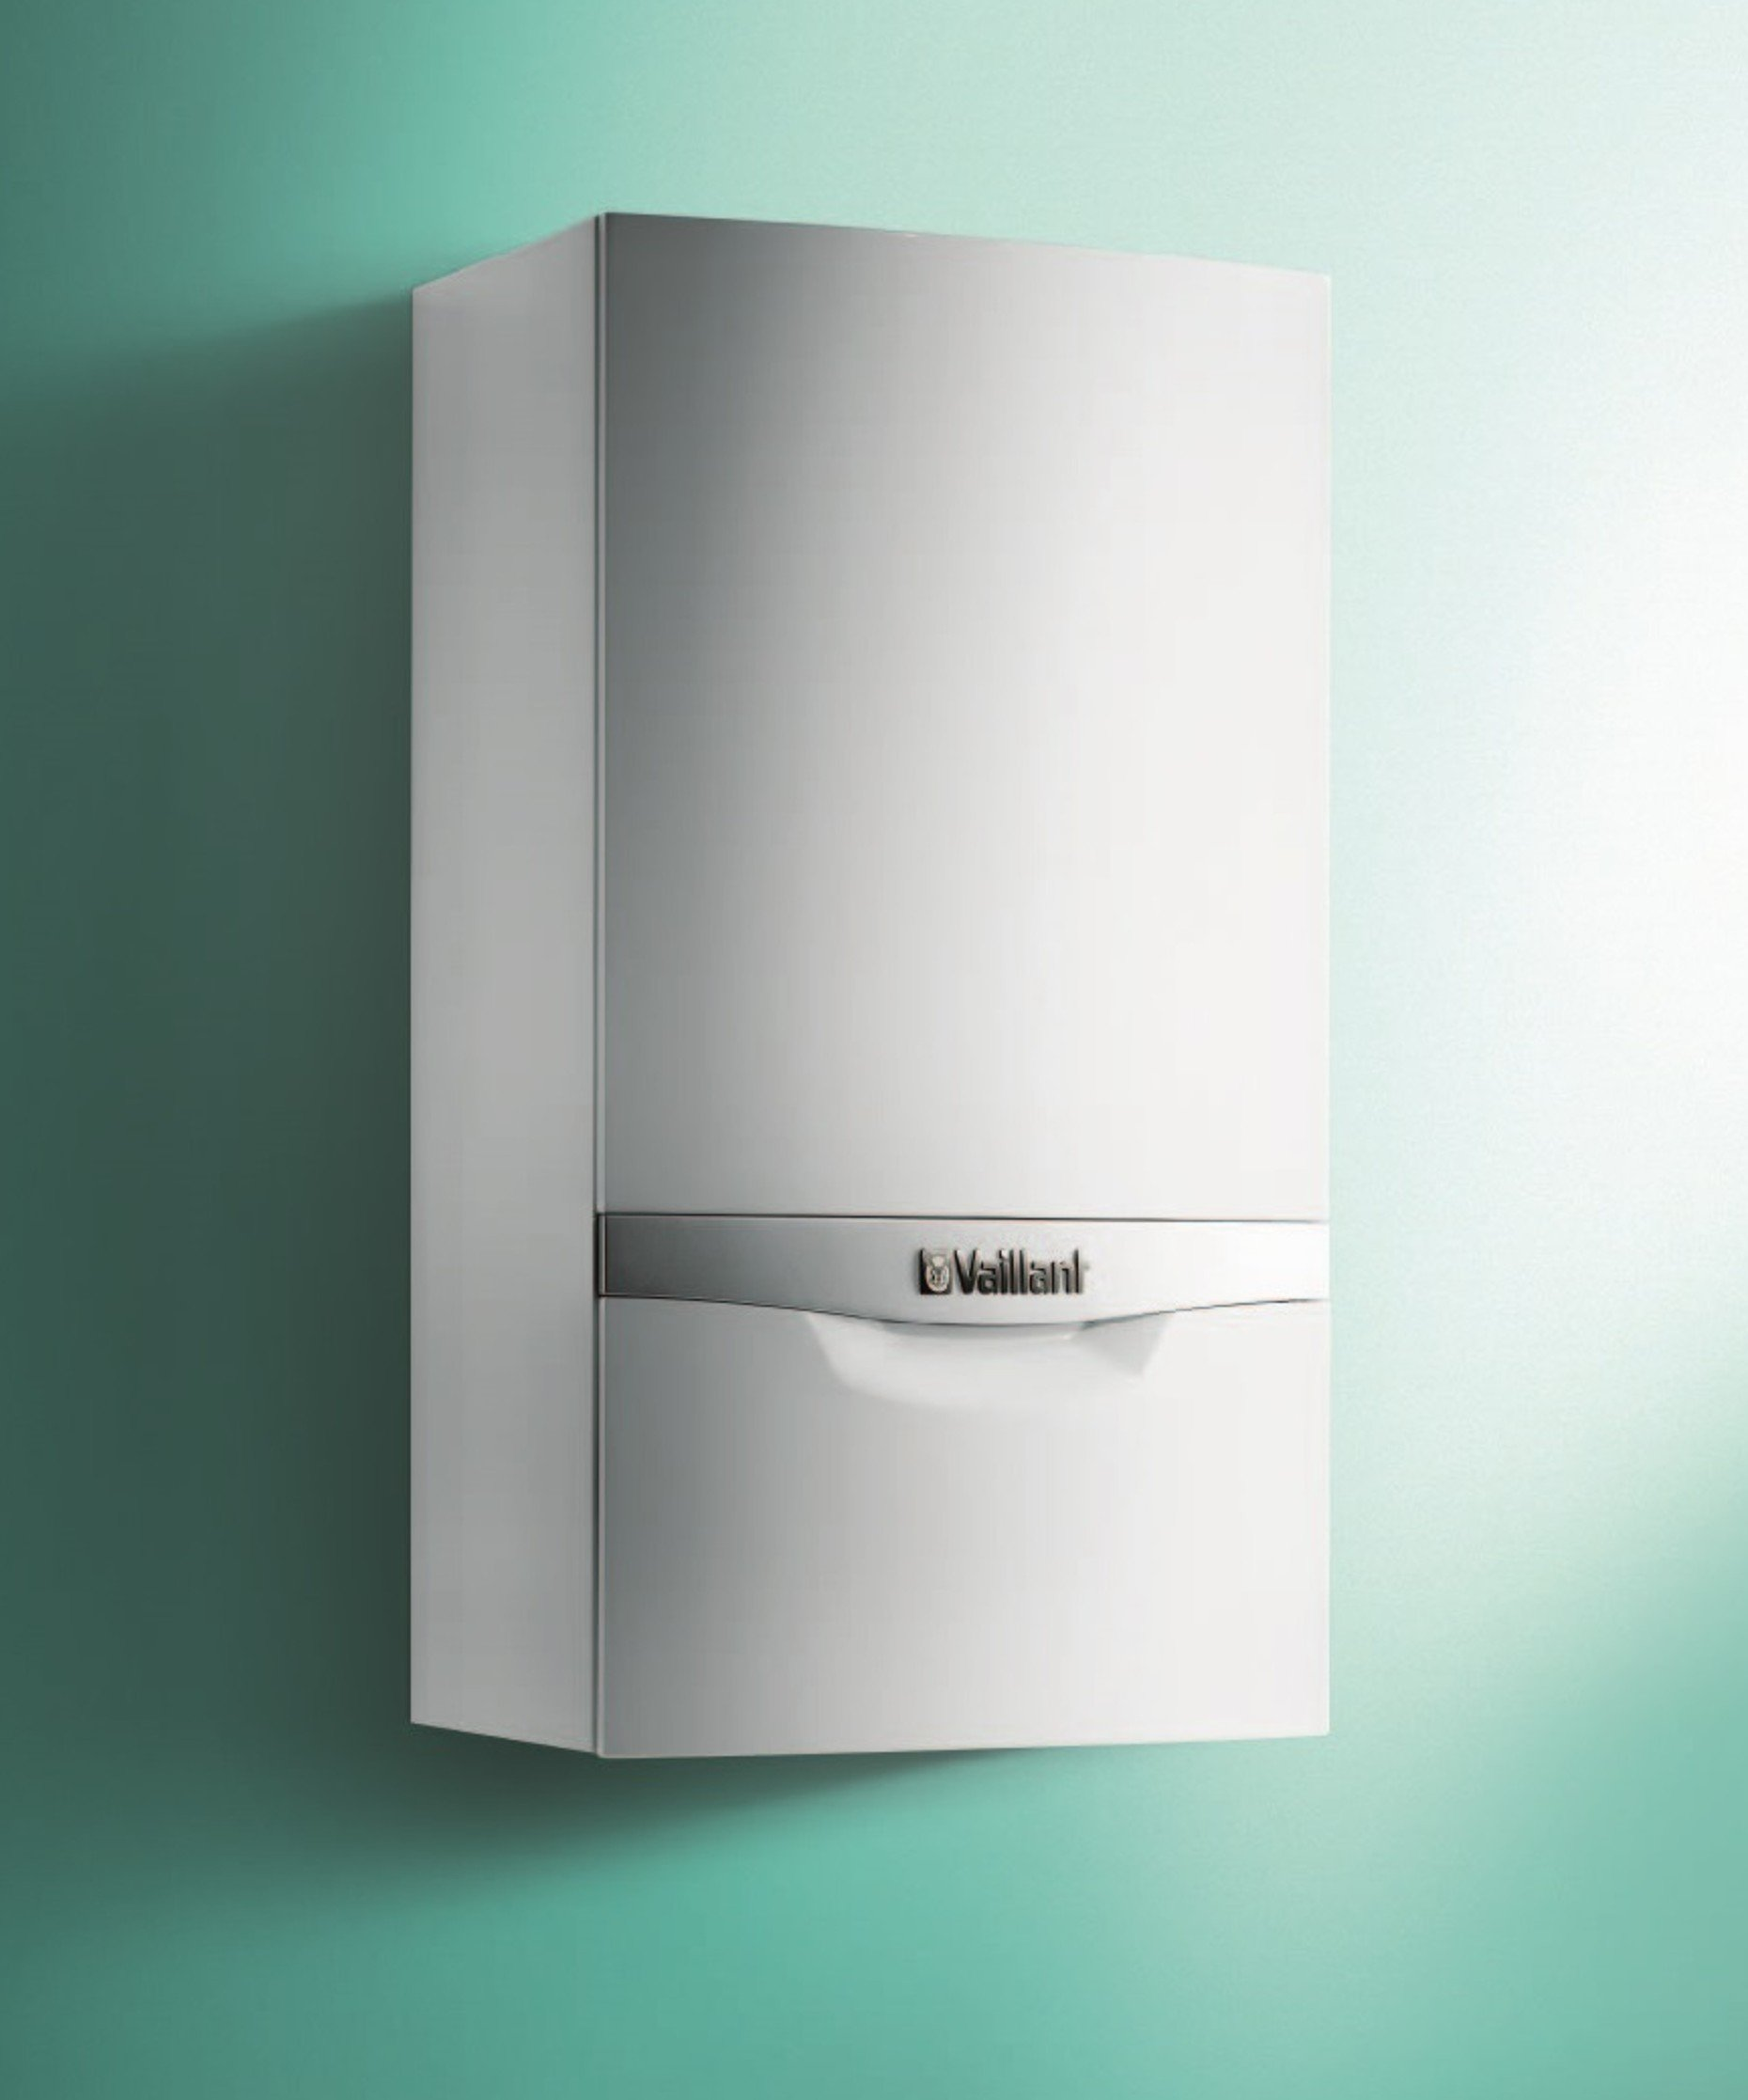 Котел газовый Vaillant Atmotec Plus VUW 280-5 10003972